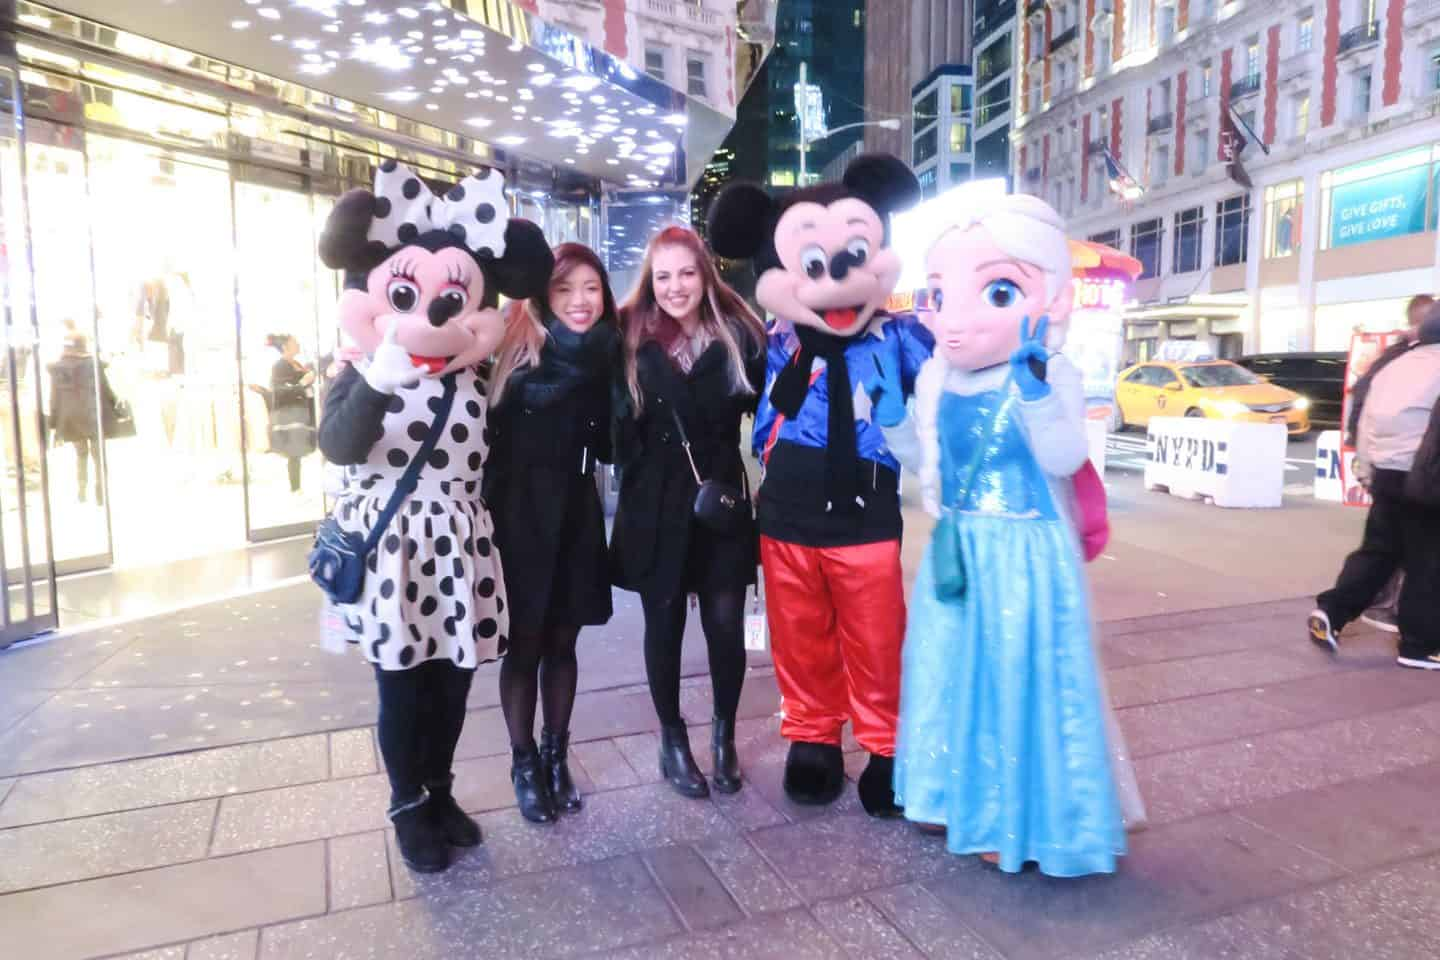 Disney characters at Times Square in New York City